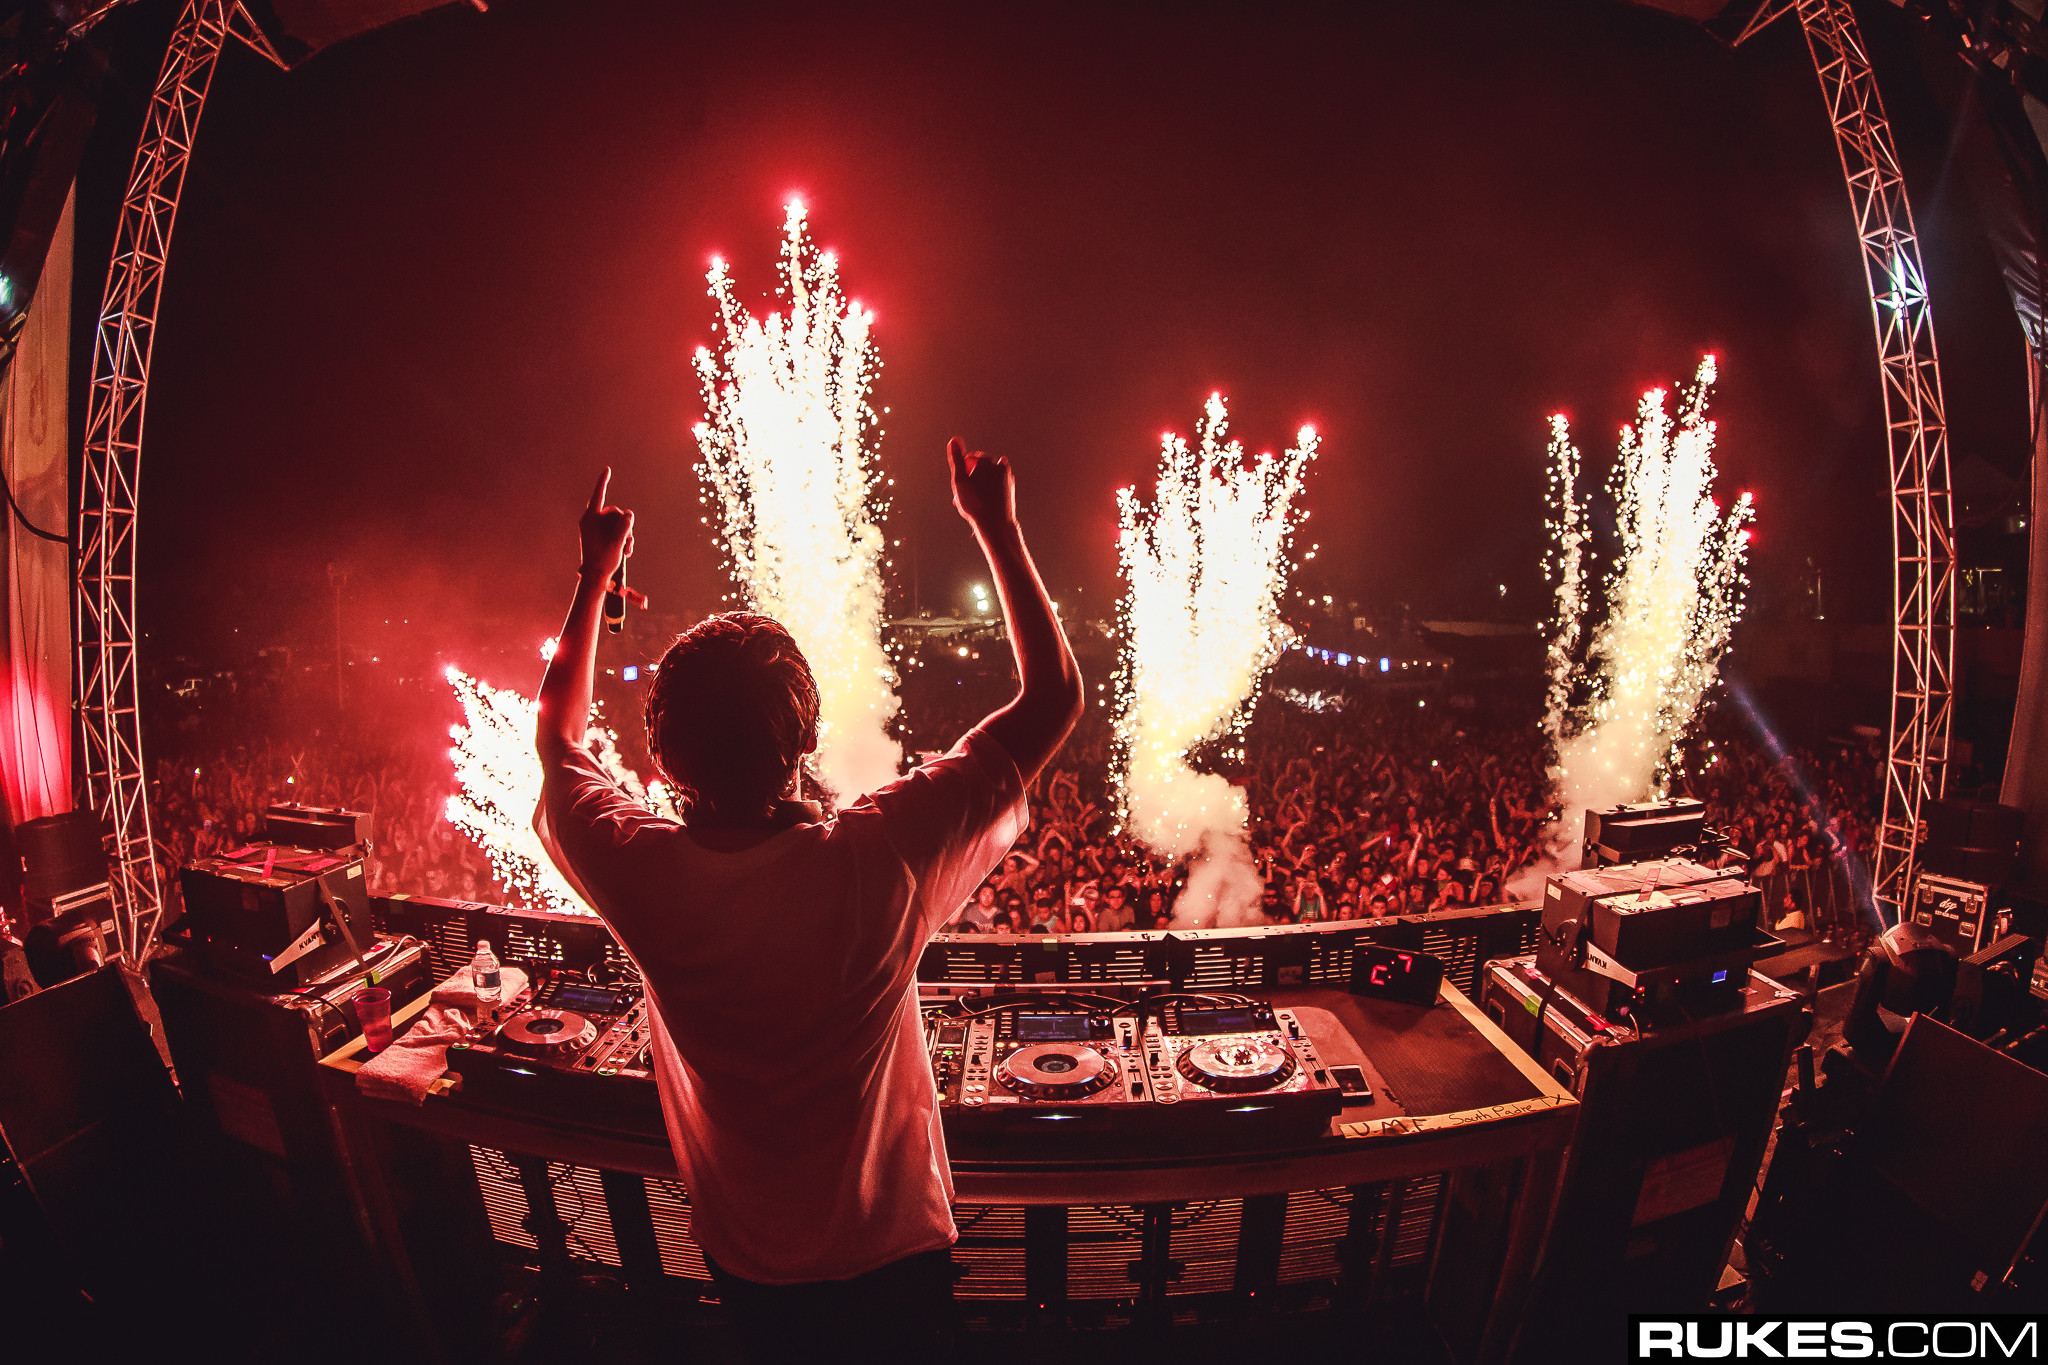 NGHTMRE Goes Hip Hop With His Brand New Track